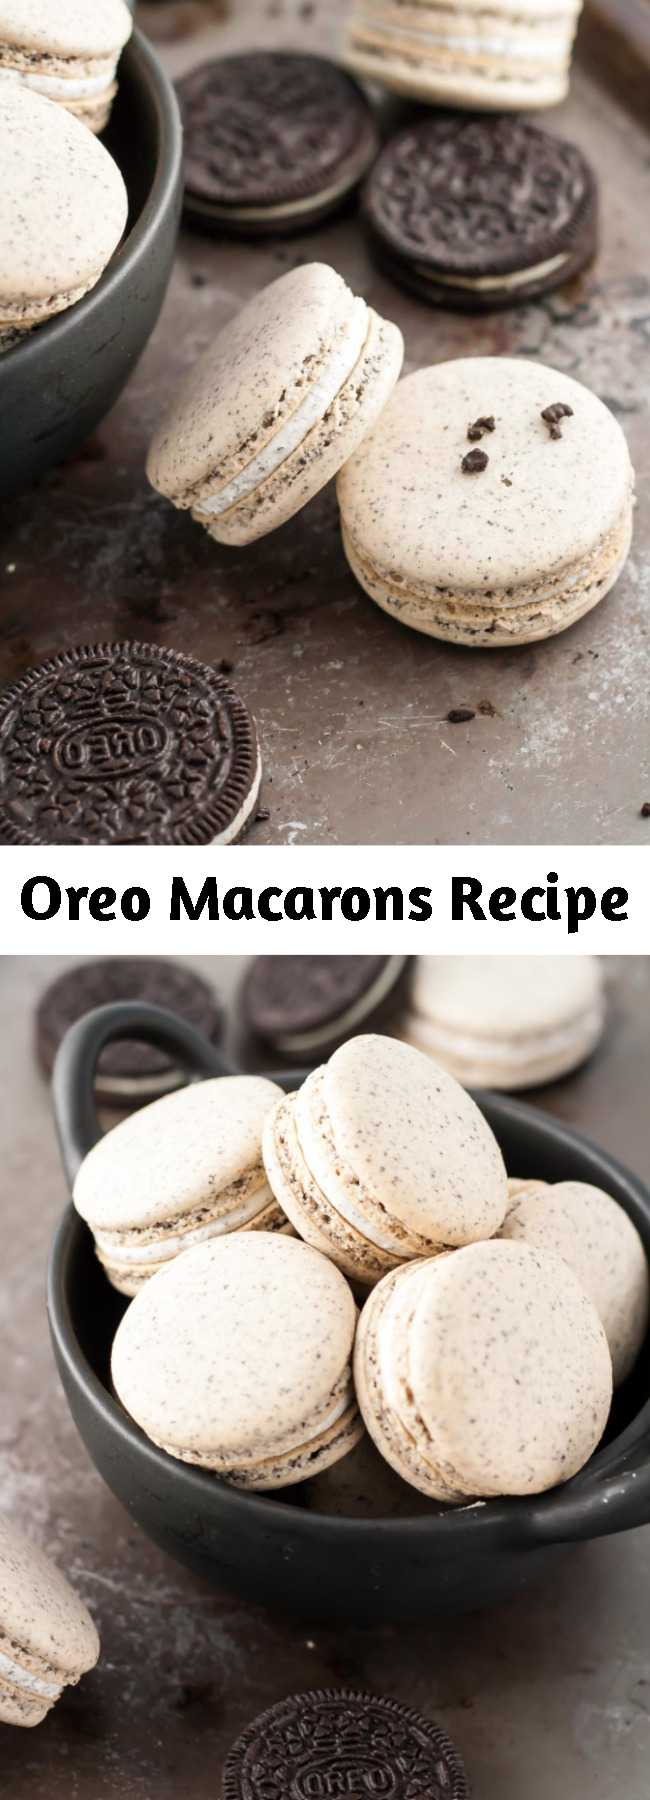 Oreo Macarons Recipe - Turn your favourite store-bought classics into something even more decadent with these delicate Oreo macarons.